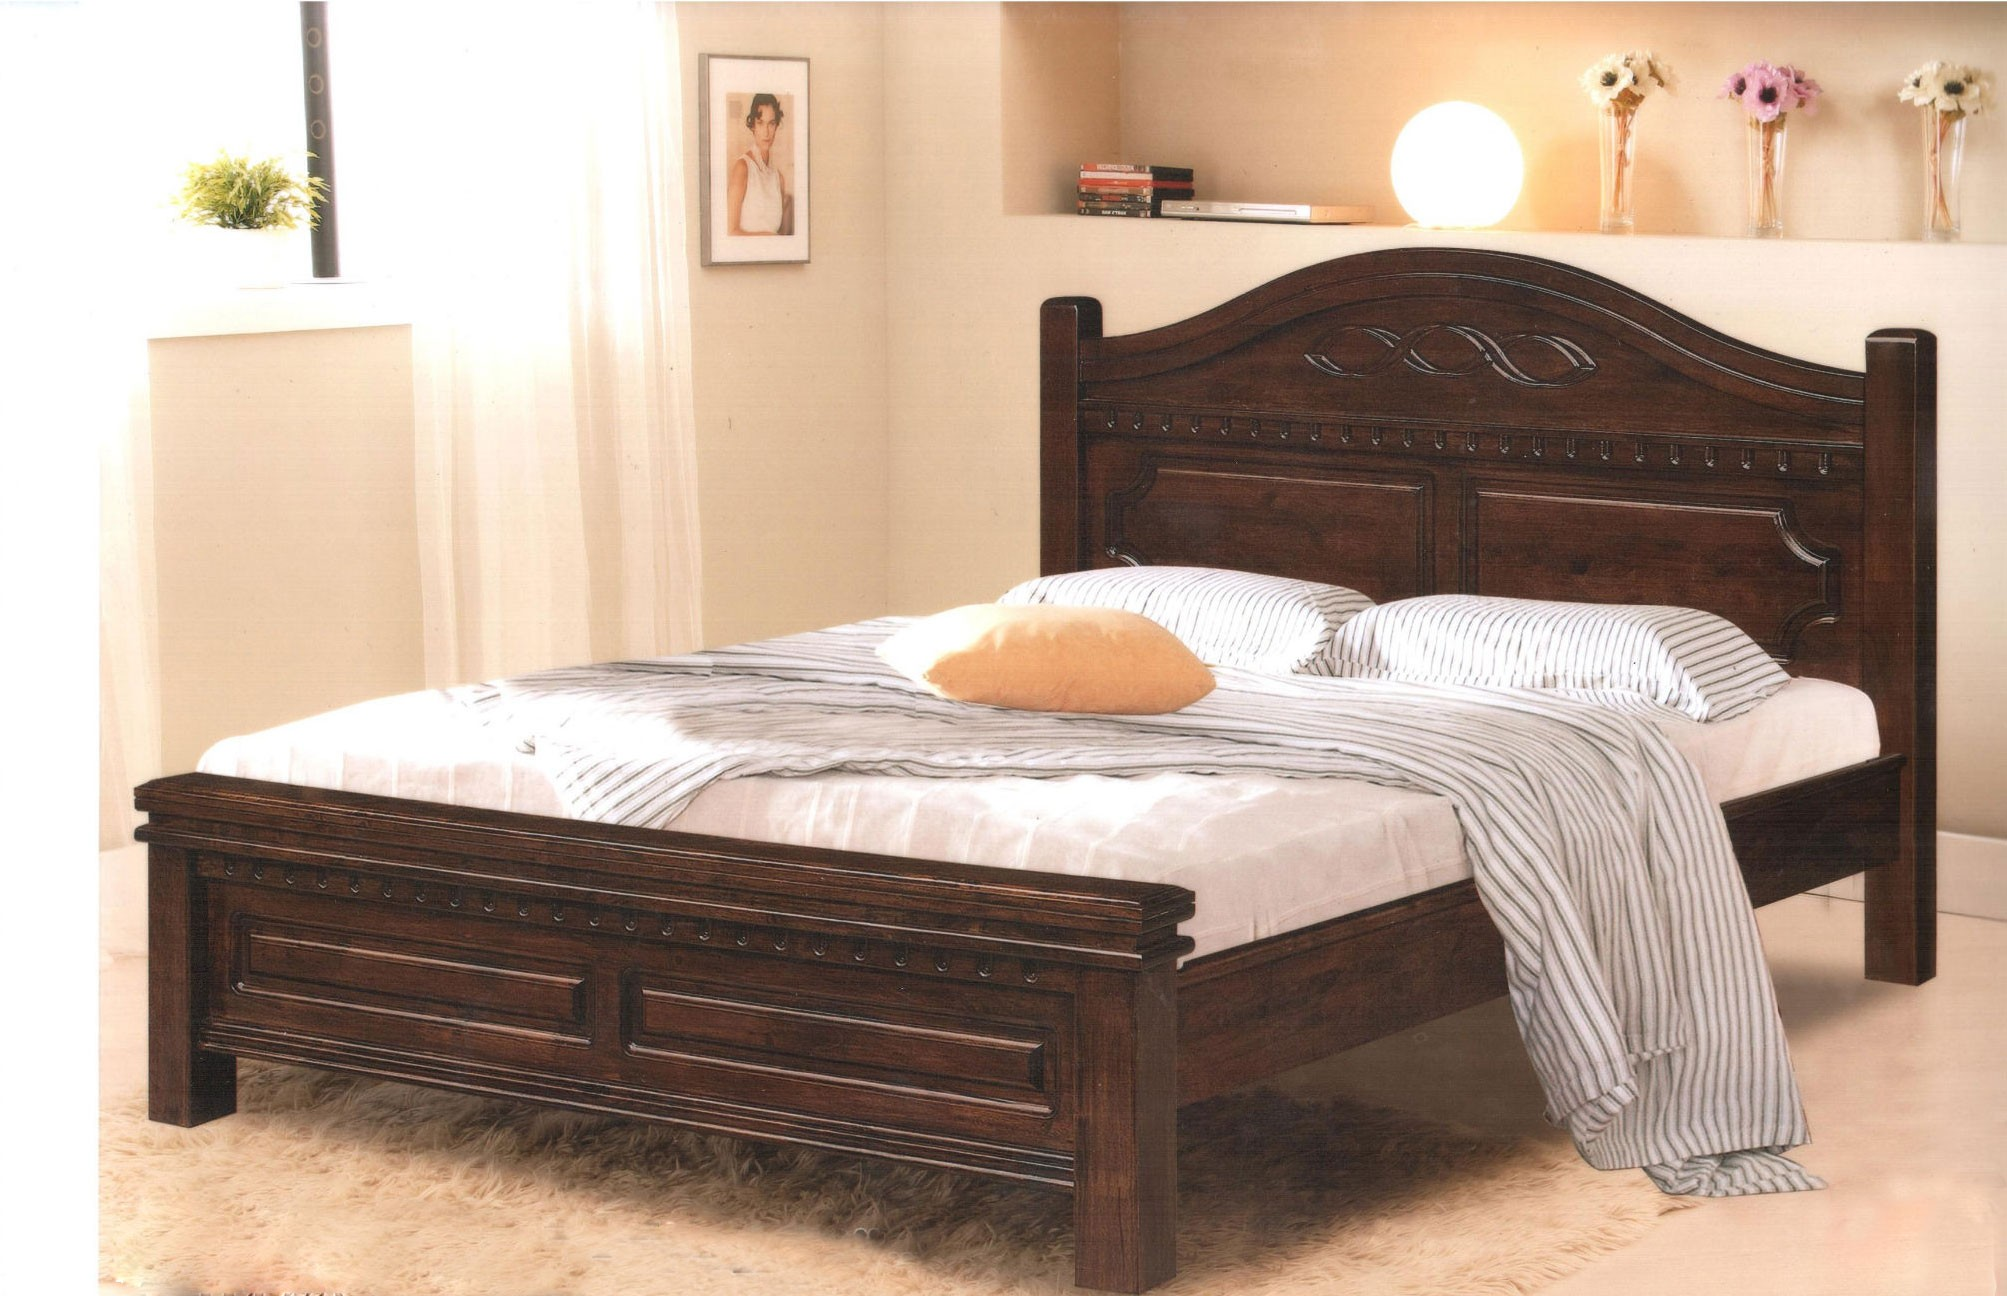 full size wooden bed frame with headboard rustic wood carved full size platform bed frame with headboard, VGCVKVW